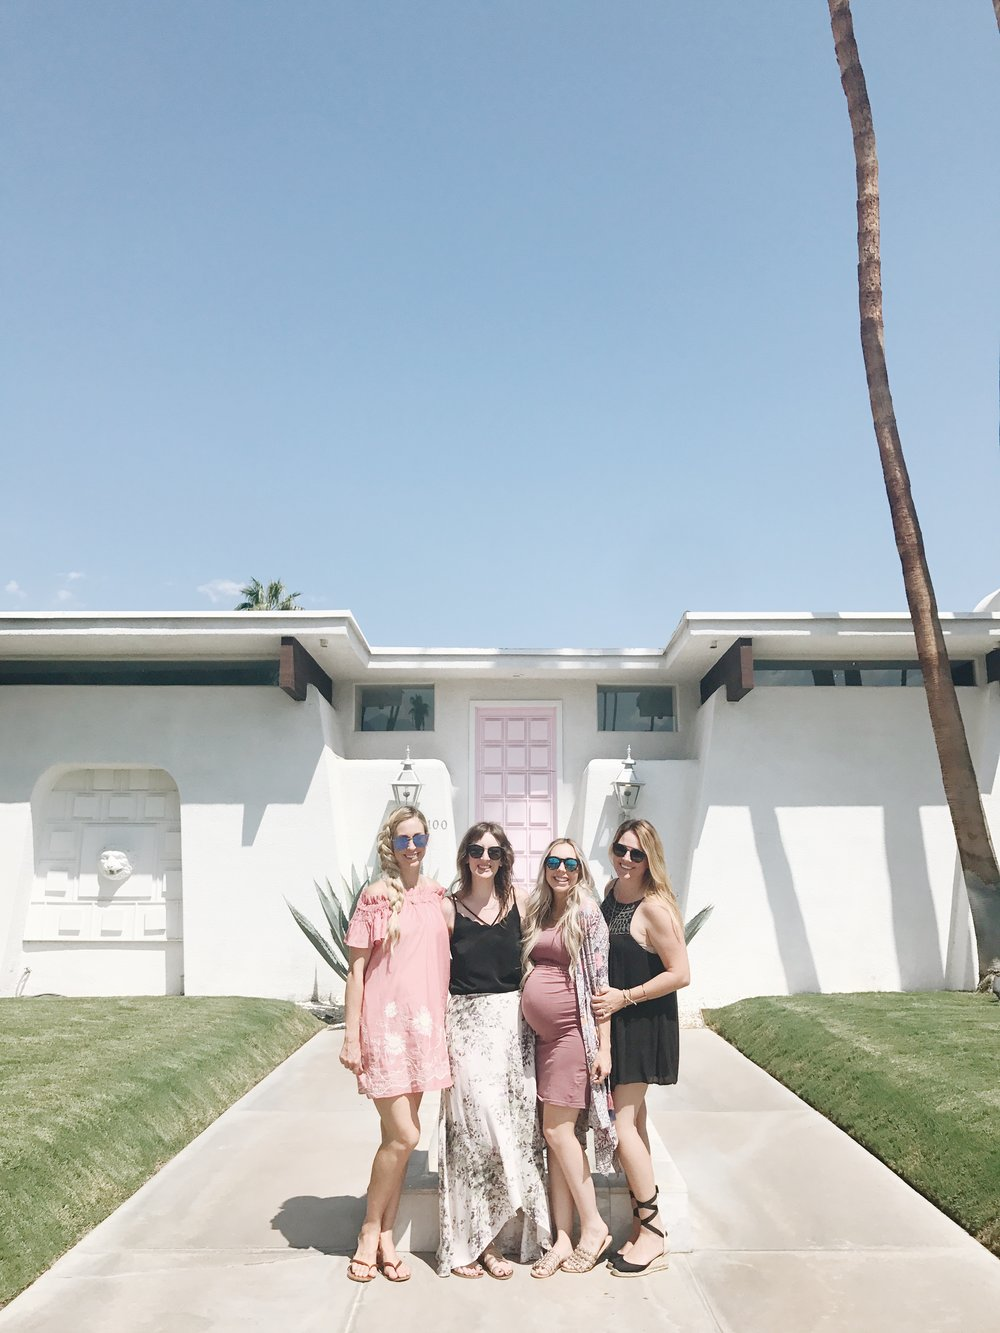 Oh hey cuties! Paige  @thelovedesignedlife  Courtney  @courtneynicoleramsey  + Britt  @britthavens